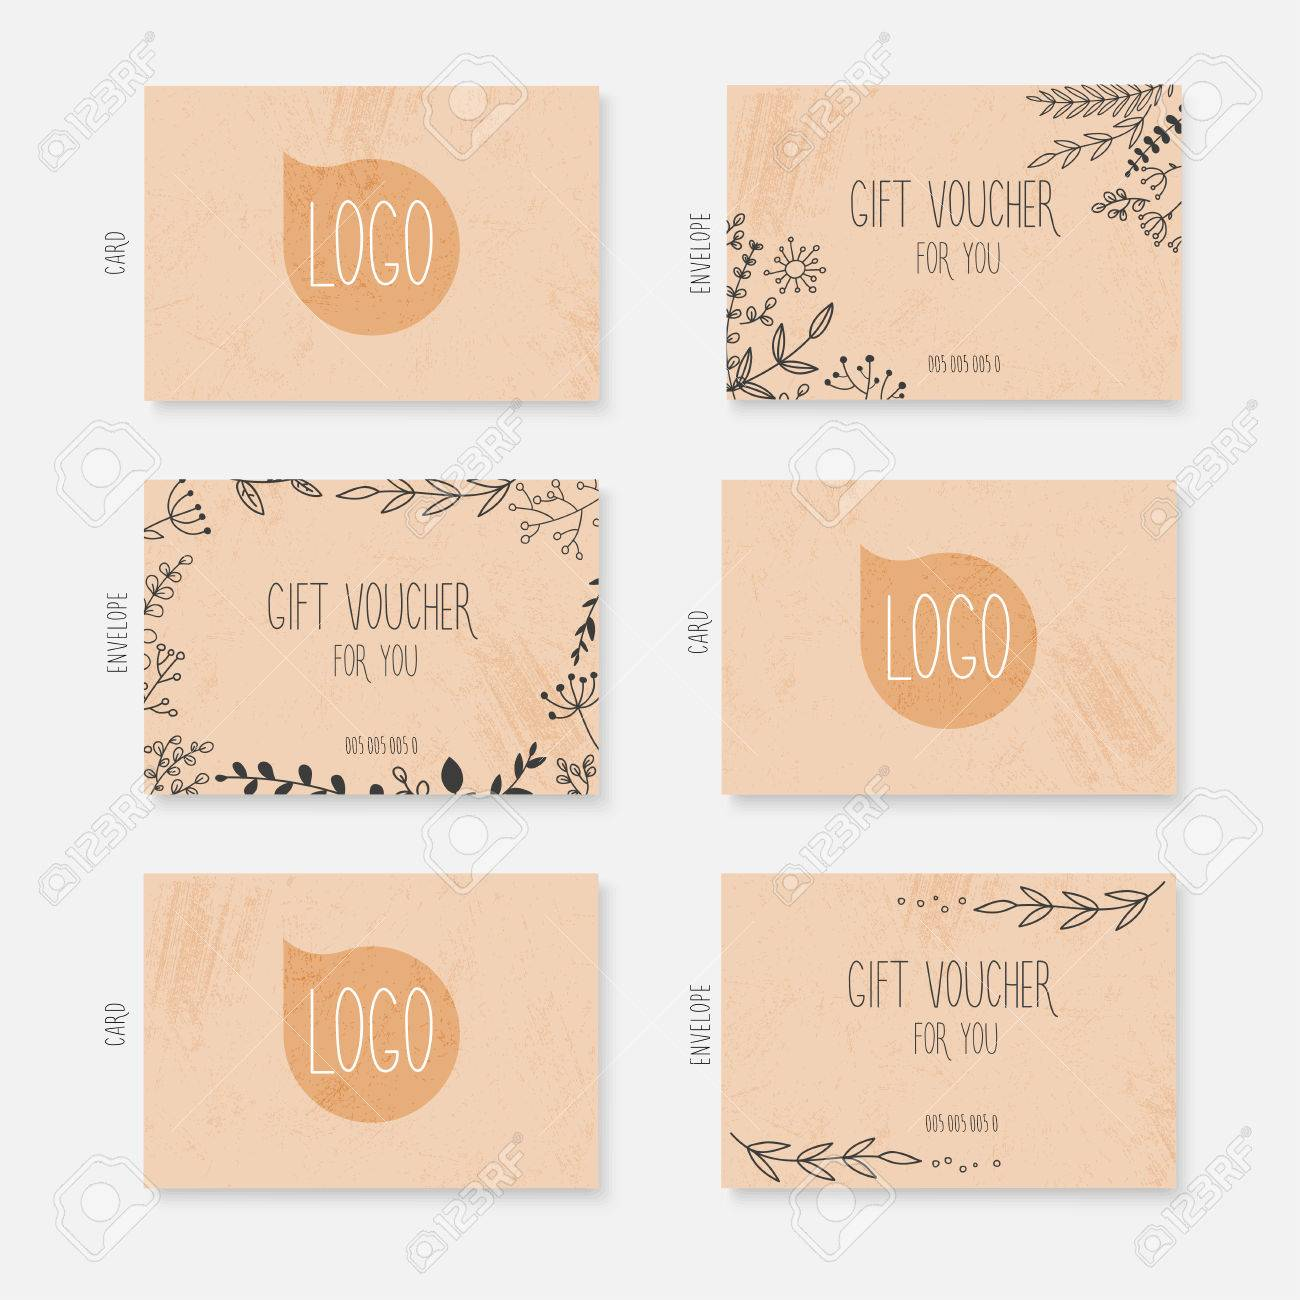 Vector Gift Voucher Card Template With Hand Drawn Leaves Background